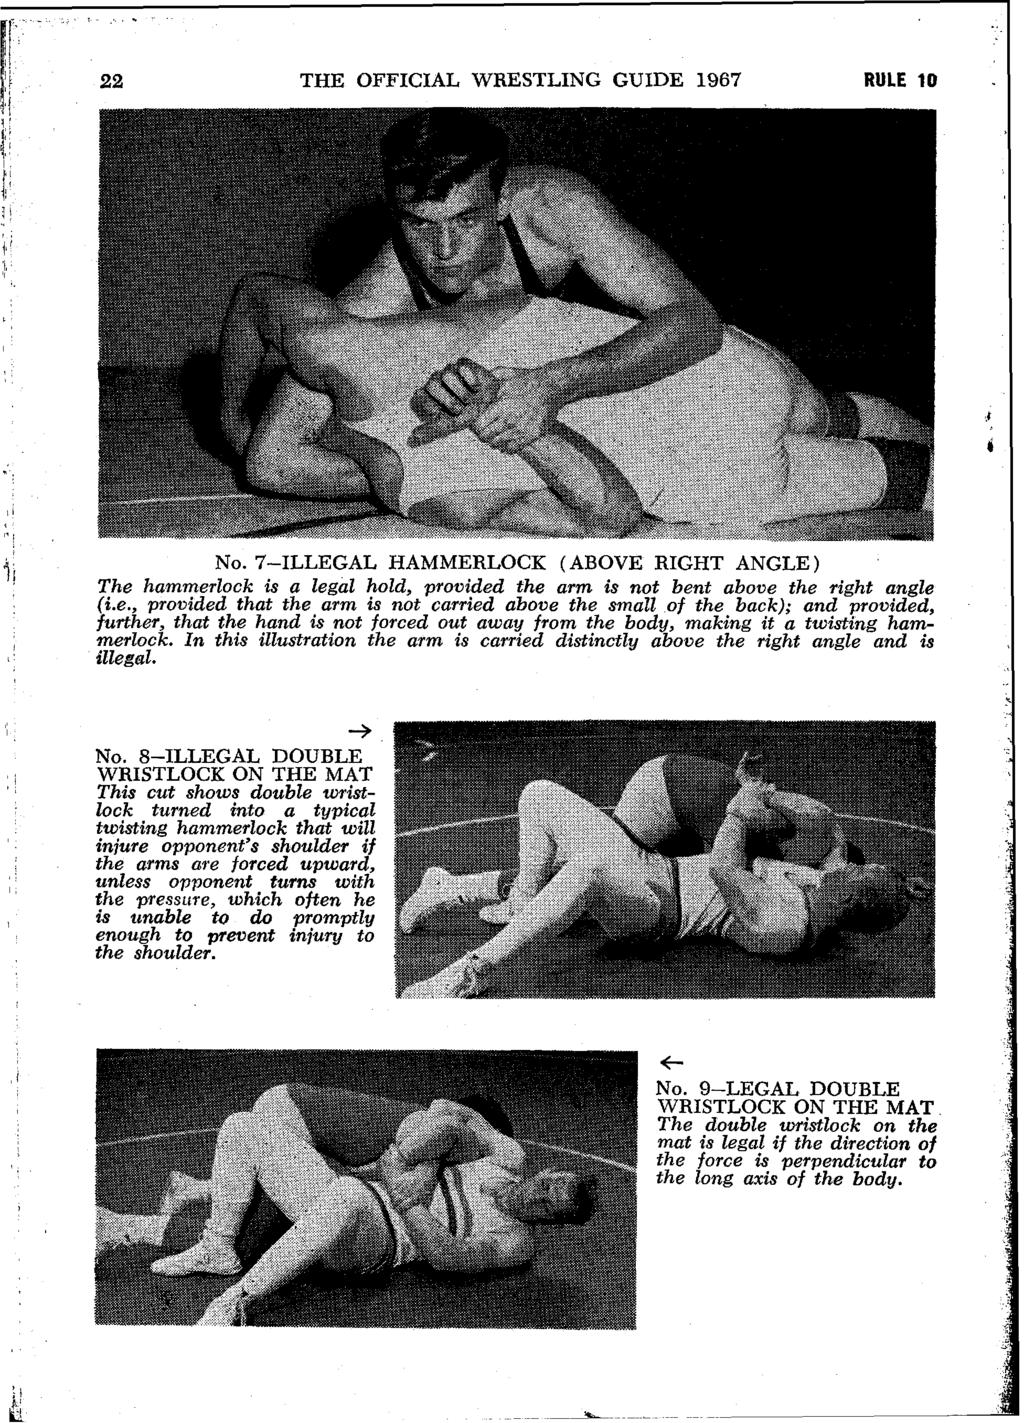 22 THE OFFICIAL WRESTLING GUIDE 1967 RULE 10 NO. 7-ILLEGAL HAMMERLOCK (ABOVE RIGHT ANGLE ) The